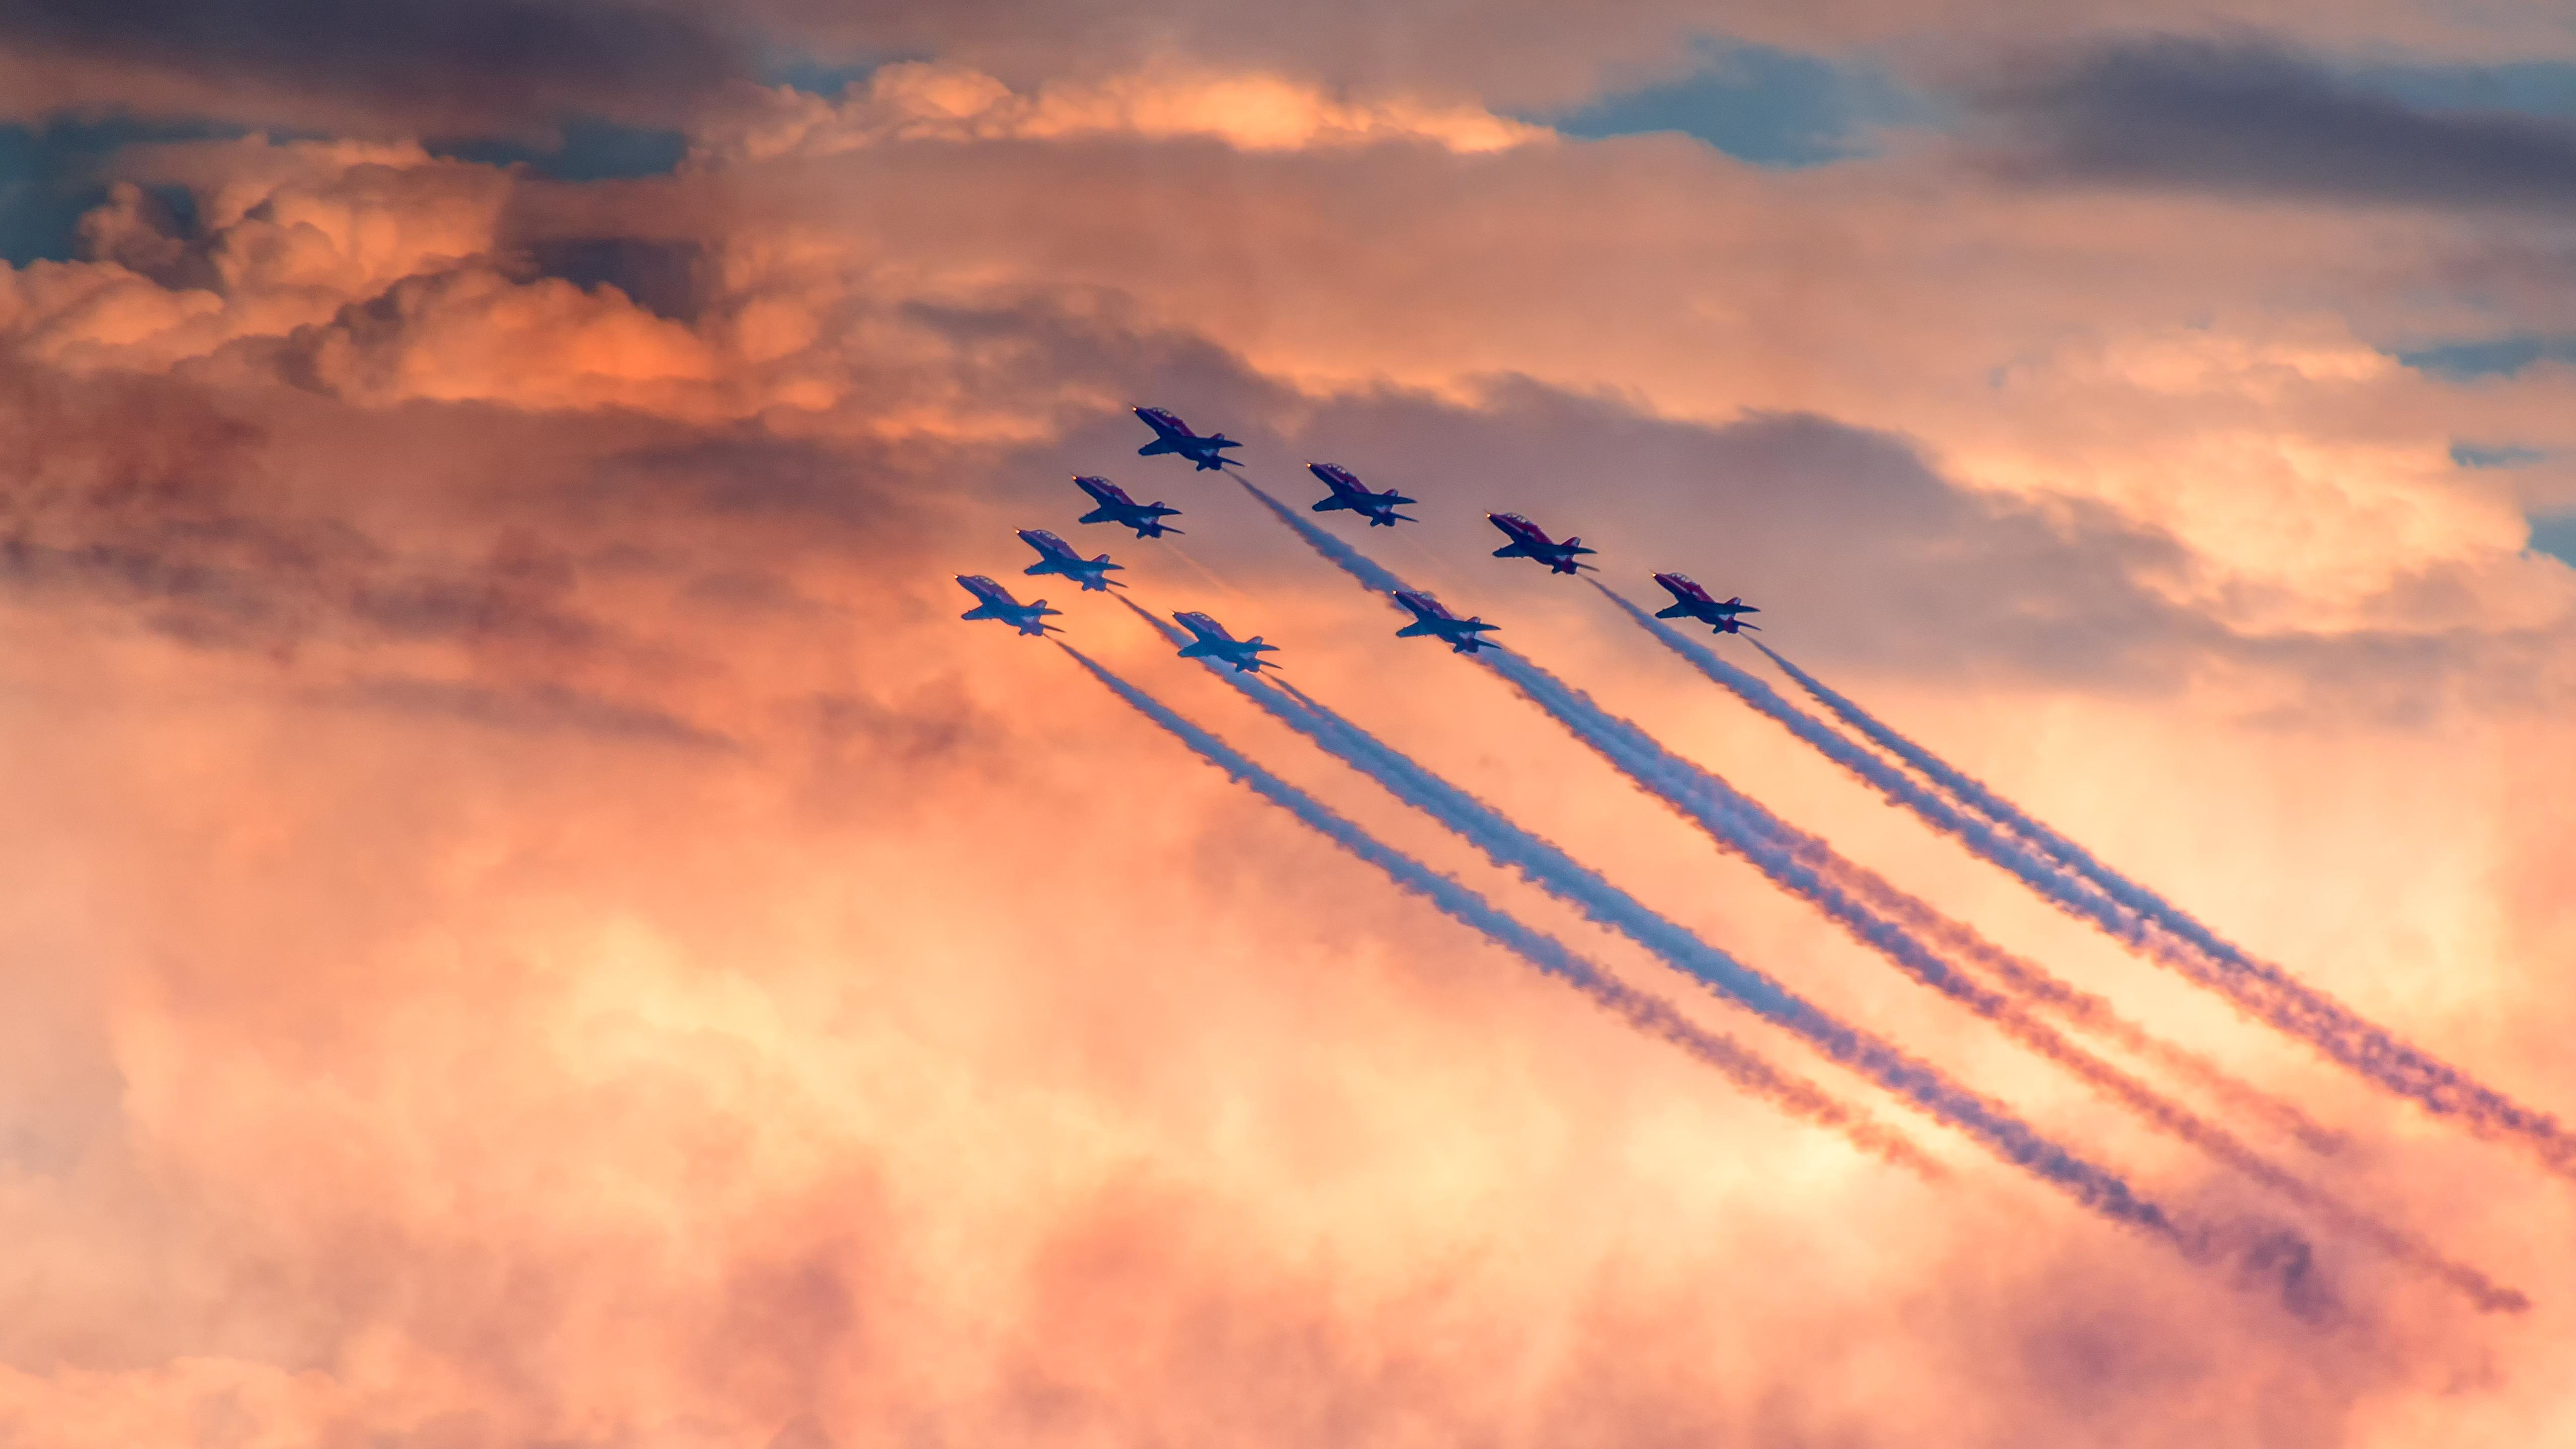 Hd Wallpapers 1080p Widescreen Cars Red Arrows Air Show 5k Wallpapers Hd Wallpapers Id 19616